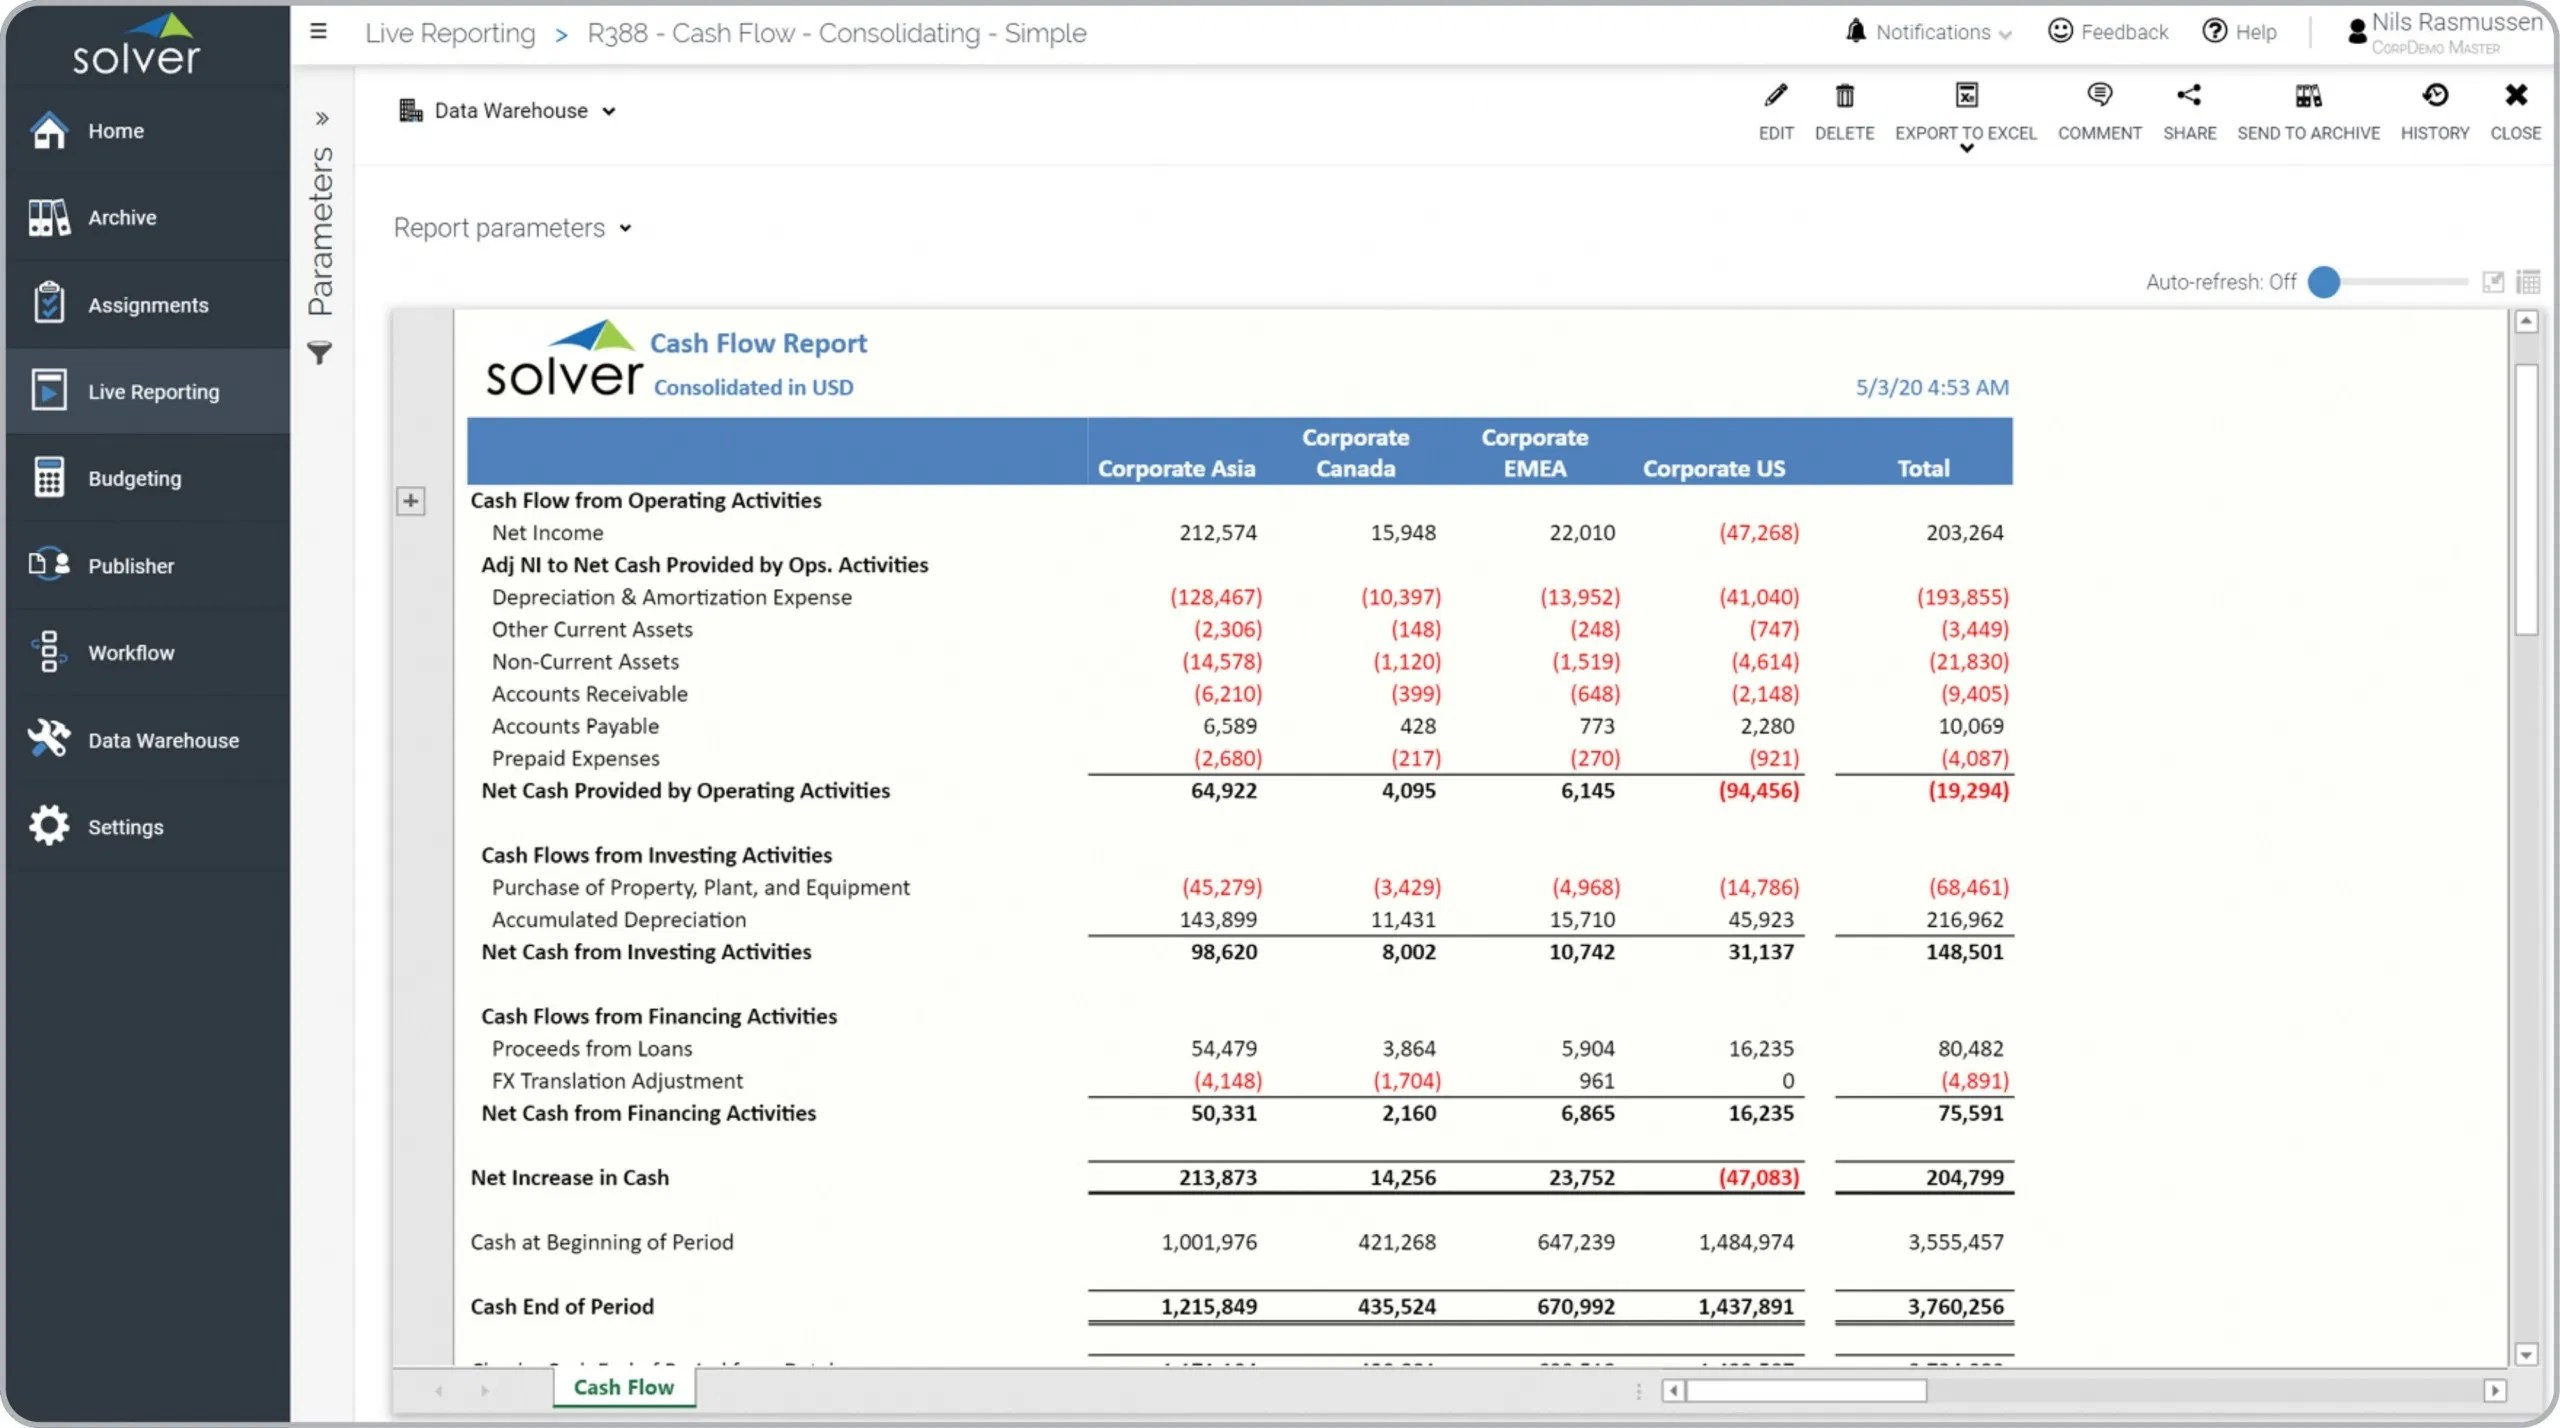 Consolidation cash flow statement